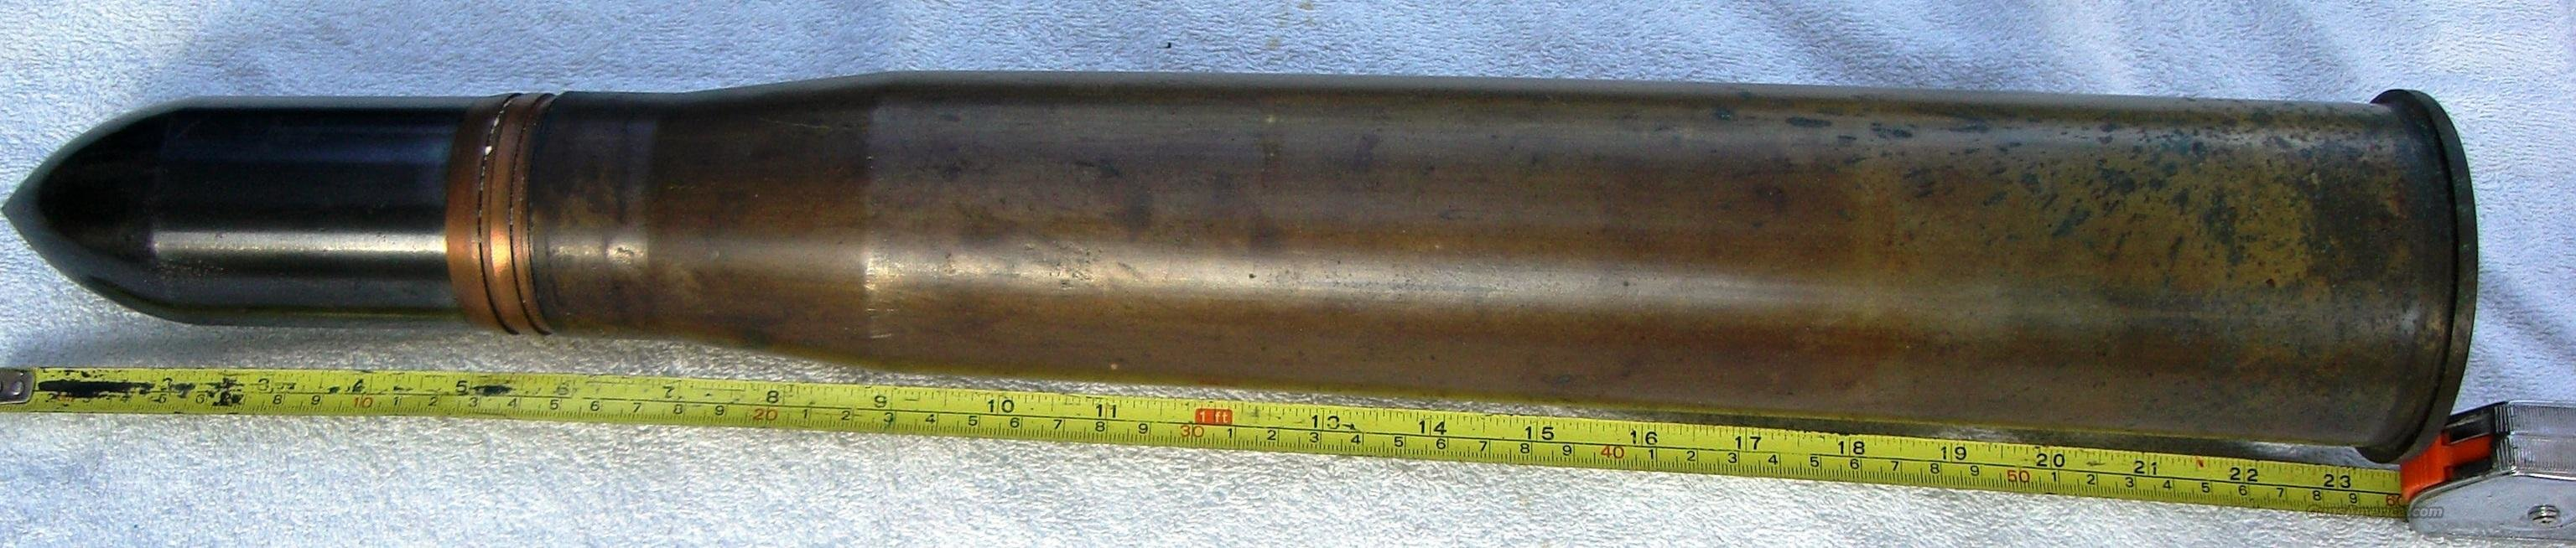 US WWII 57mm Antitank Shell Complete  Non-Guns > Military > De-Milled Weapons